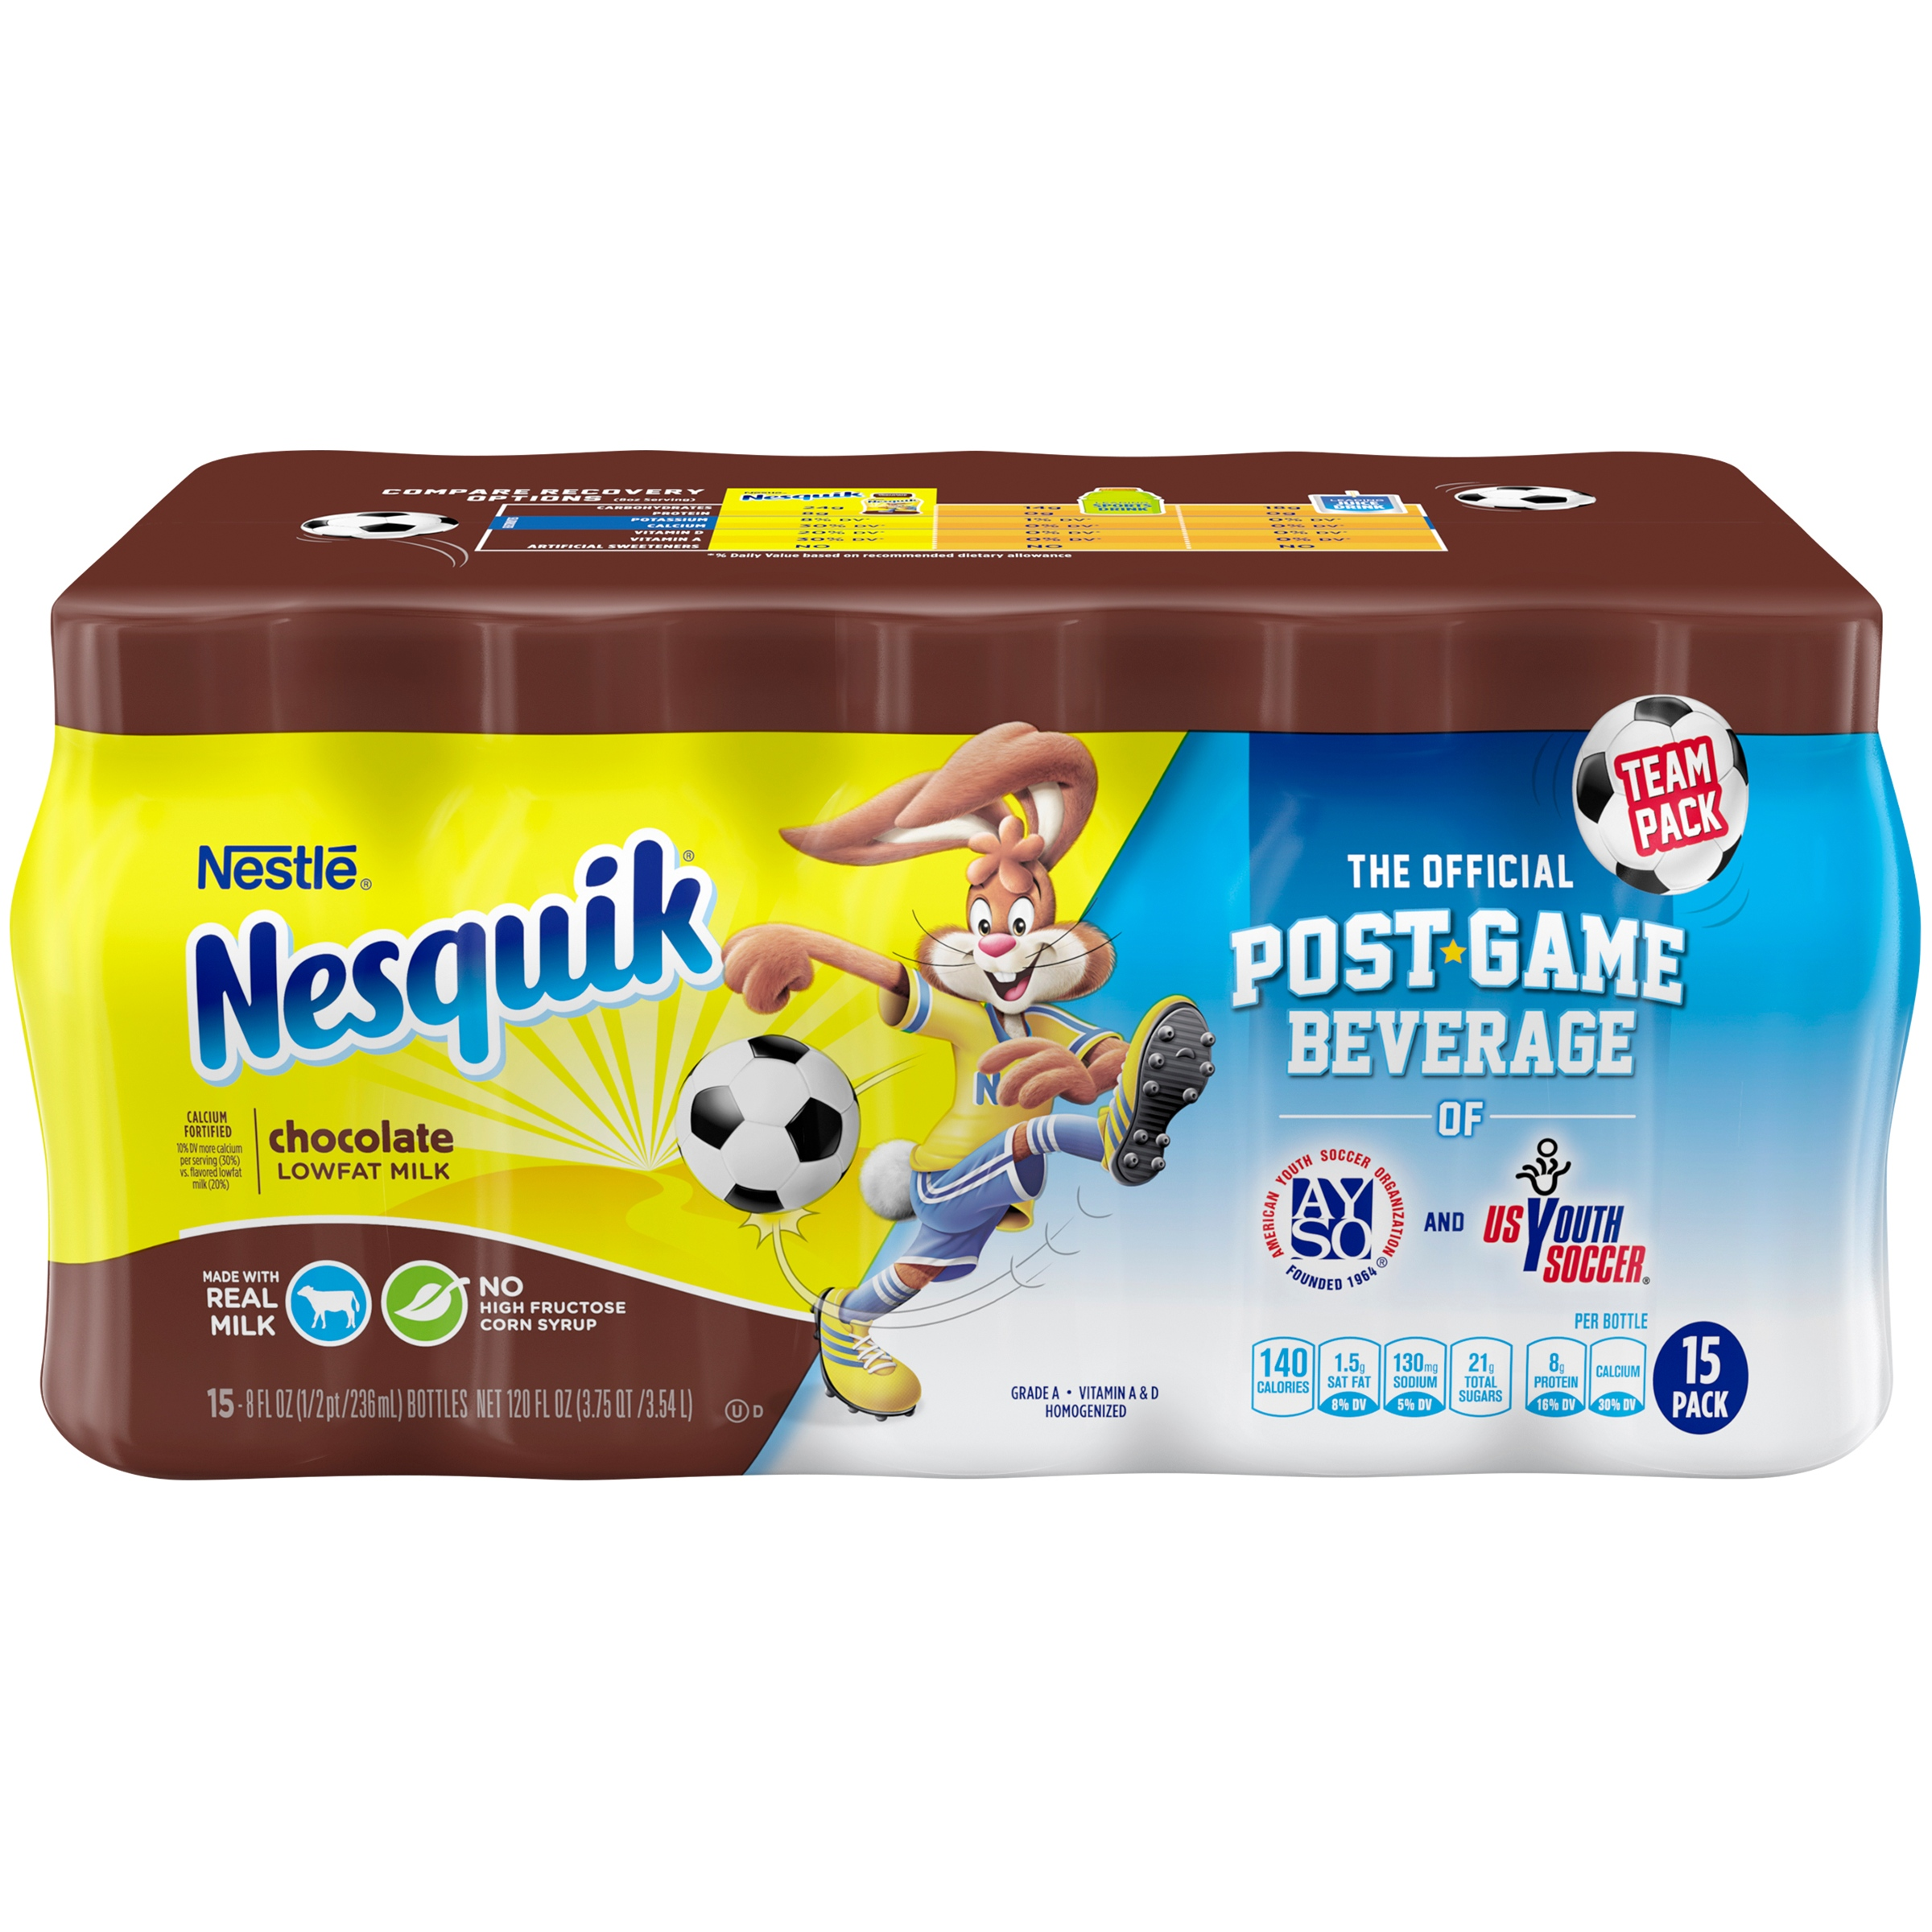 NESTLE NESQUIK Chocolate Low Fat Milk 15-8 fl. oz. Plastic Bottles